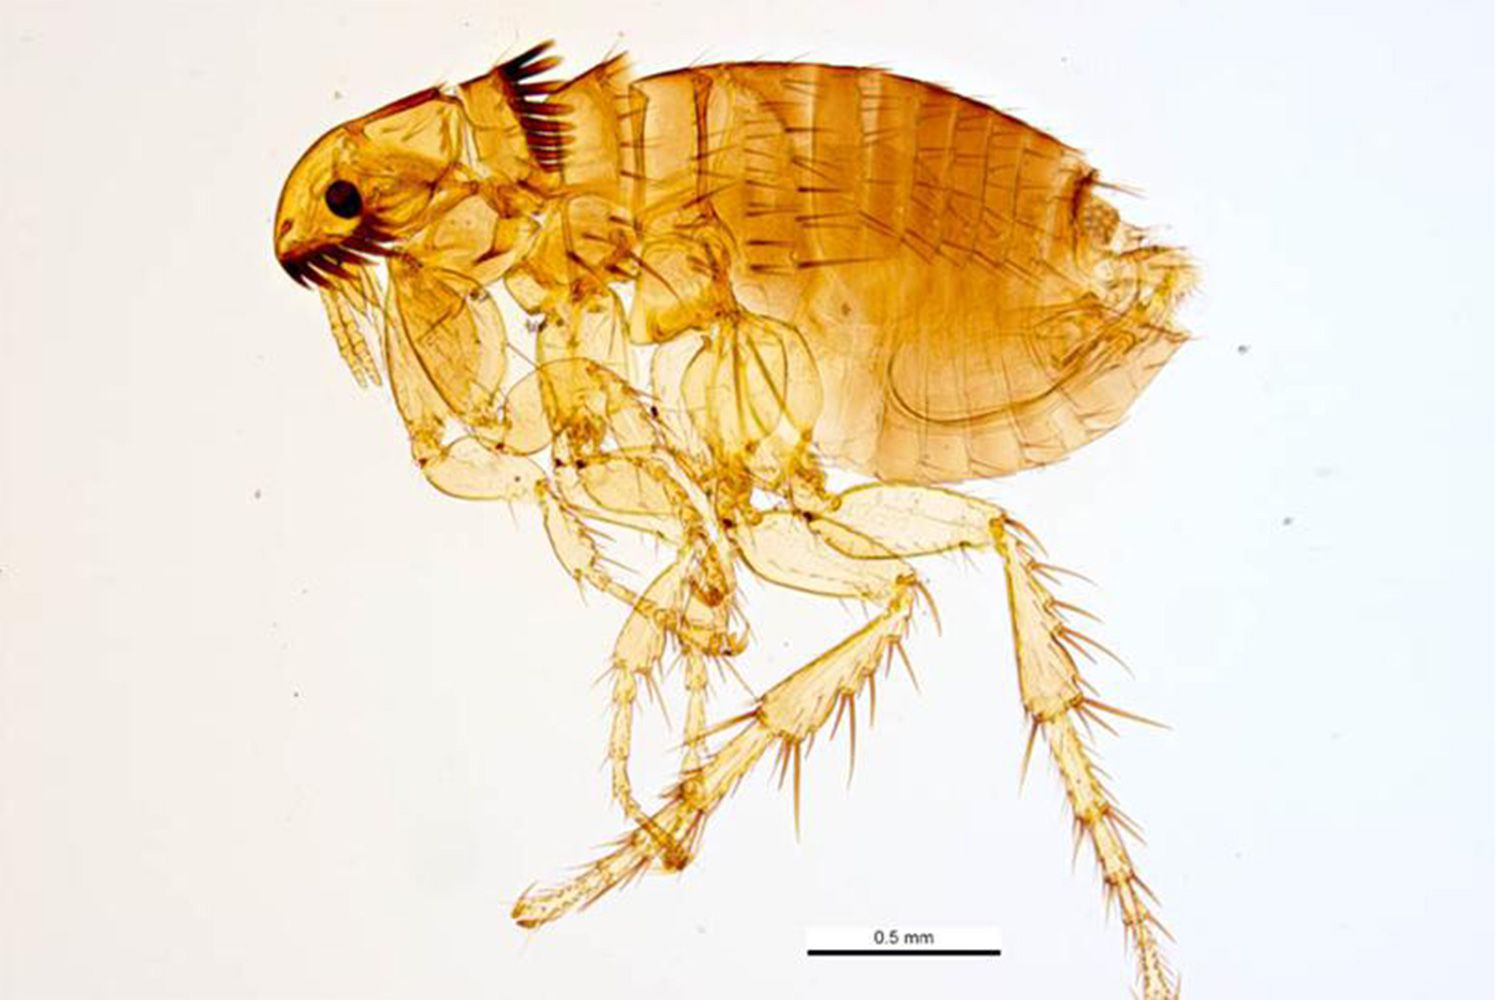 3 steps to get rid of fleas in your home